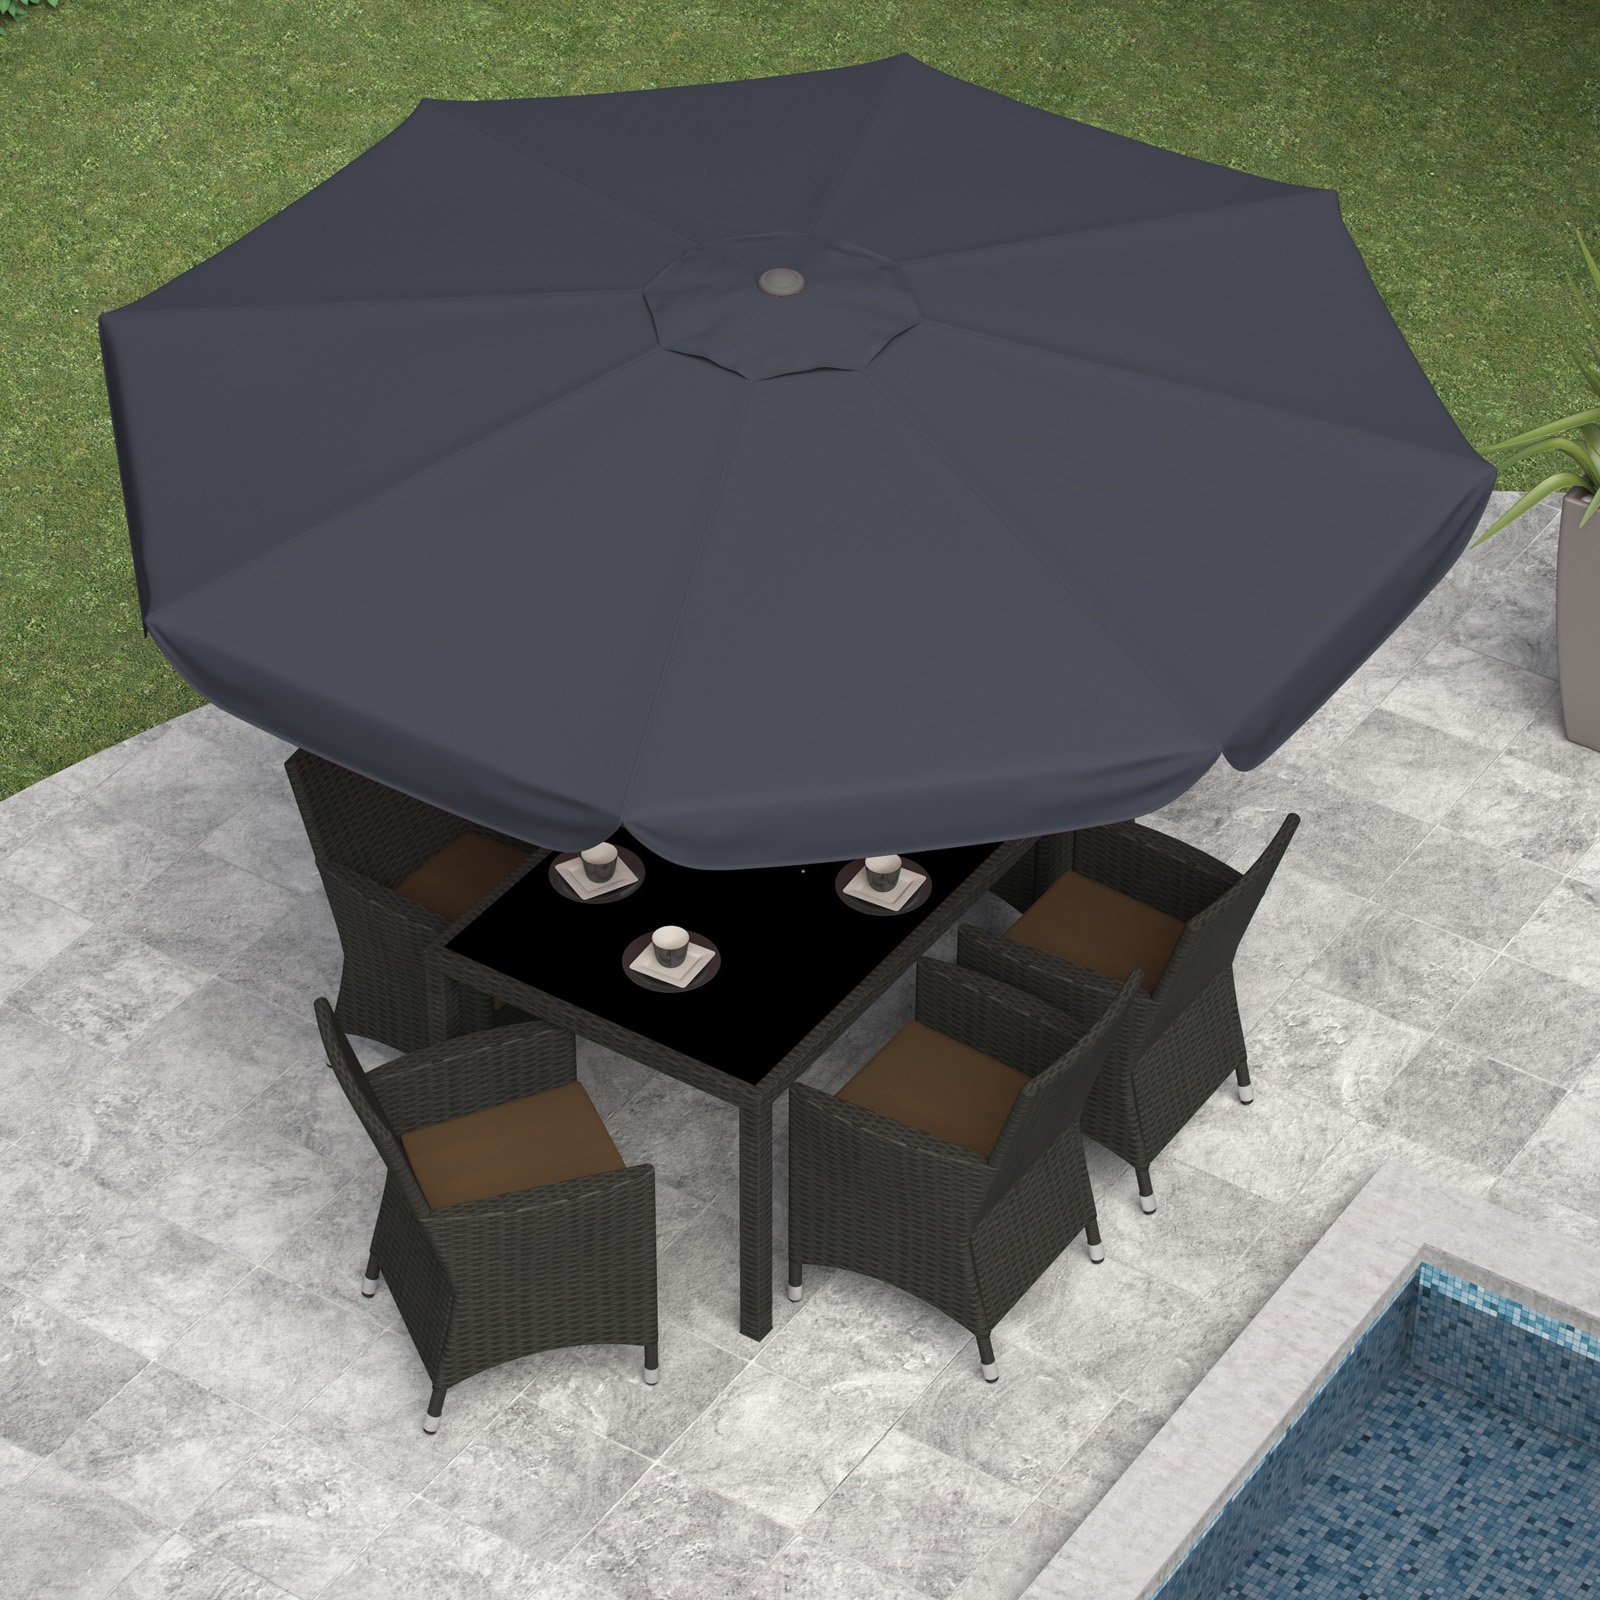 CorLiving Tilting Patio Umbrella by Sonax